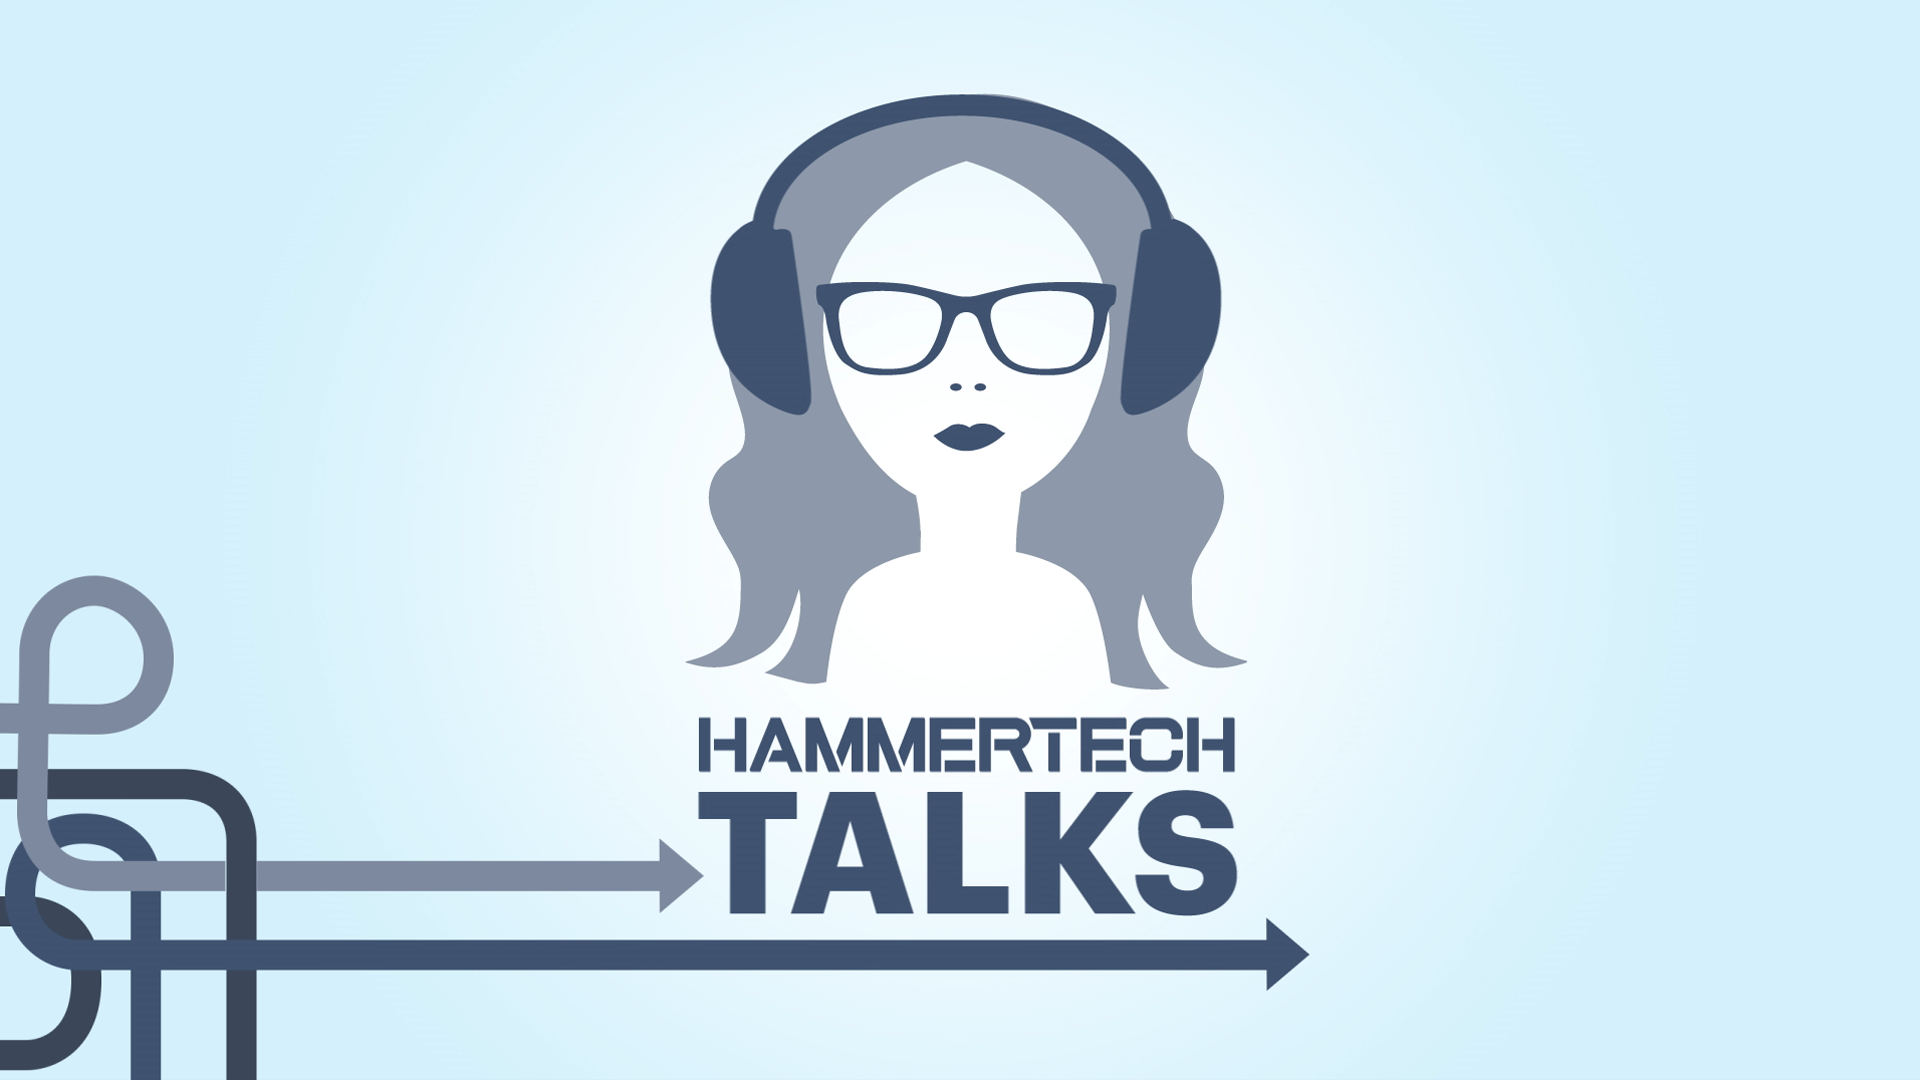 HammerTech Talks with Paul Butler, Safety Manager at DPR Construction